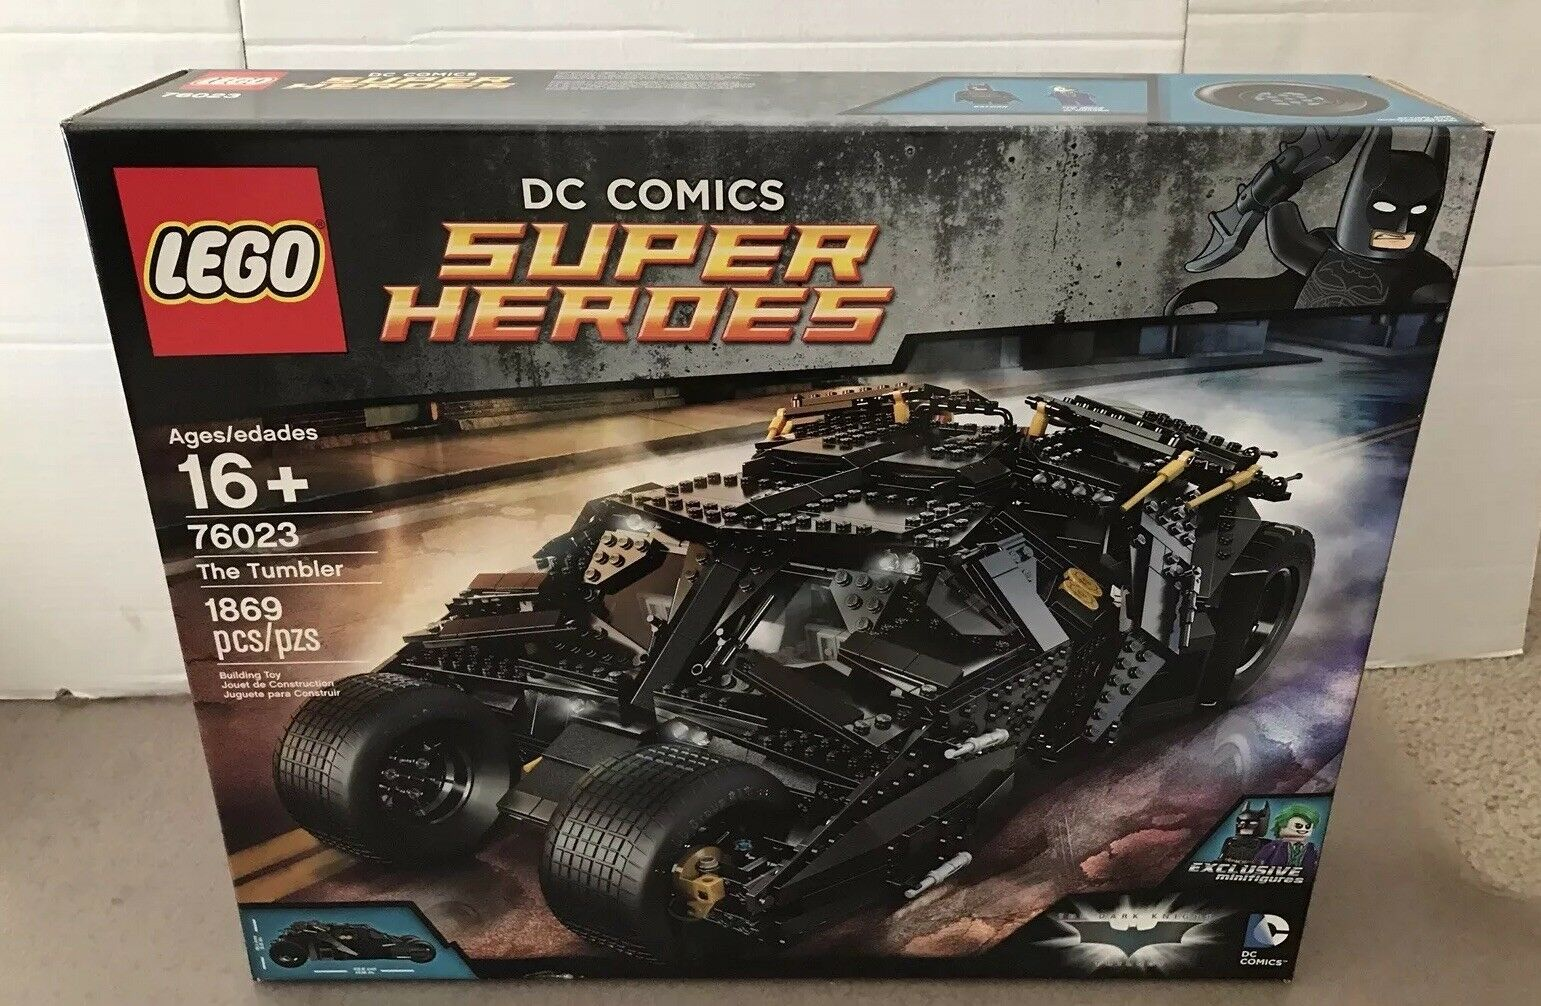 LEGO DC COMICS Super Heroes Heroes Heroes The Tumbler (76023) New Sealed RetiROT 38d87c